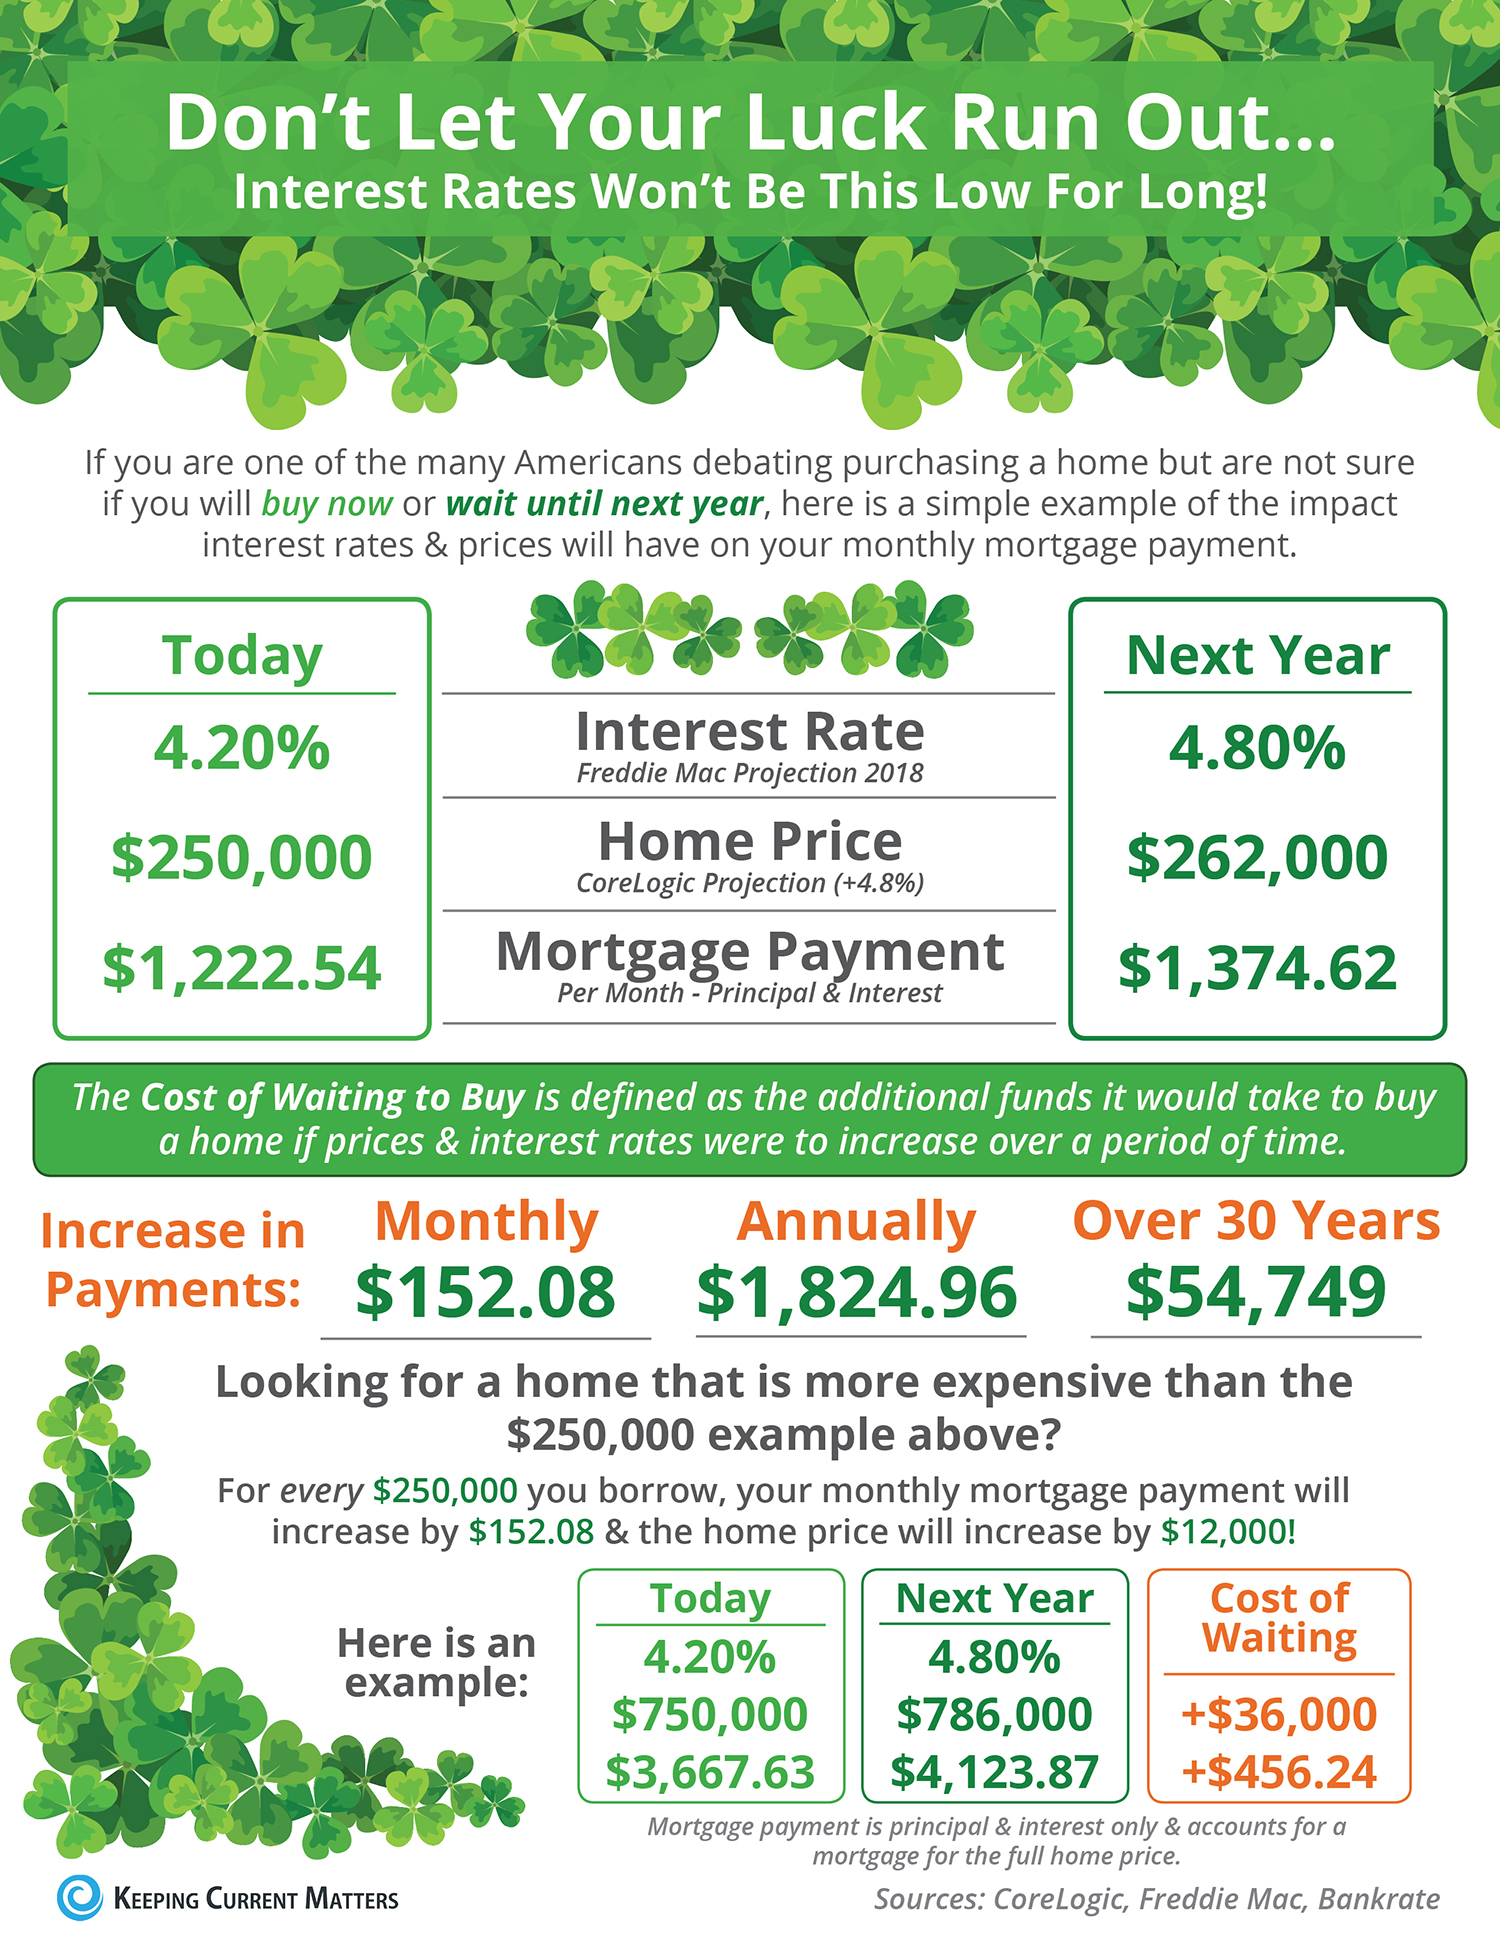 Don't Let Your Luck Run Out [INFOGRAPHIC] | Keeping Current Matters